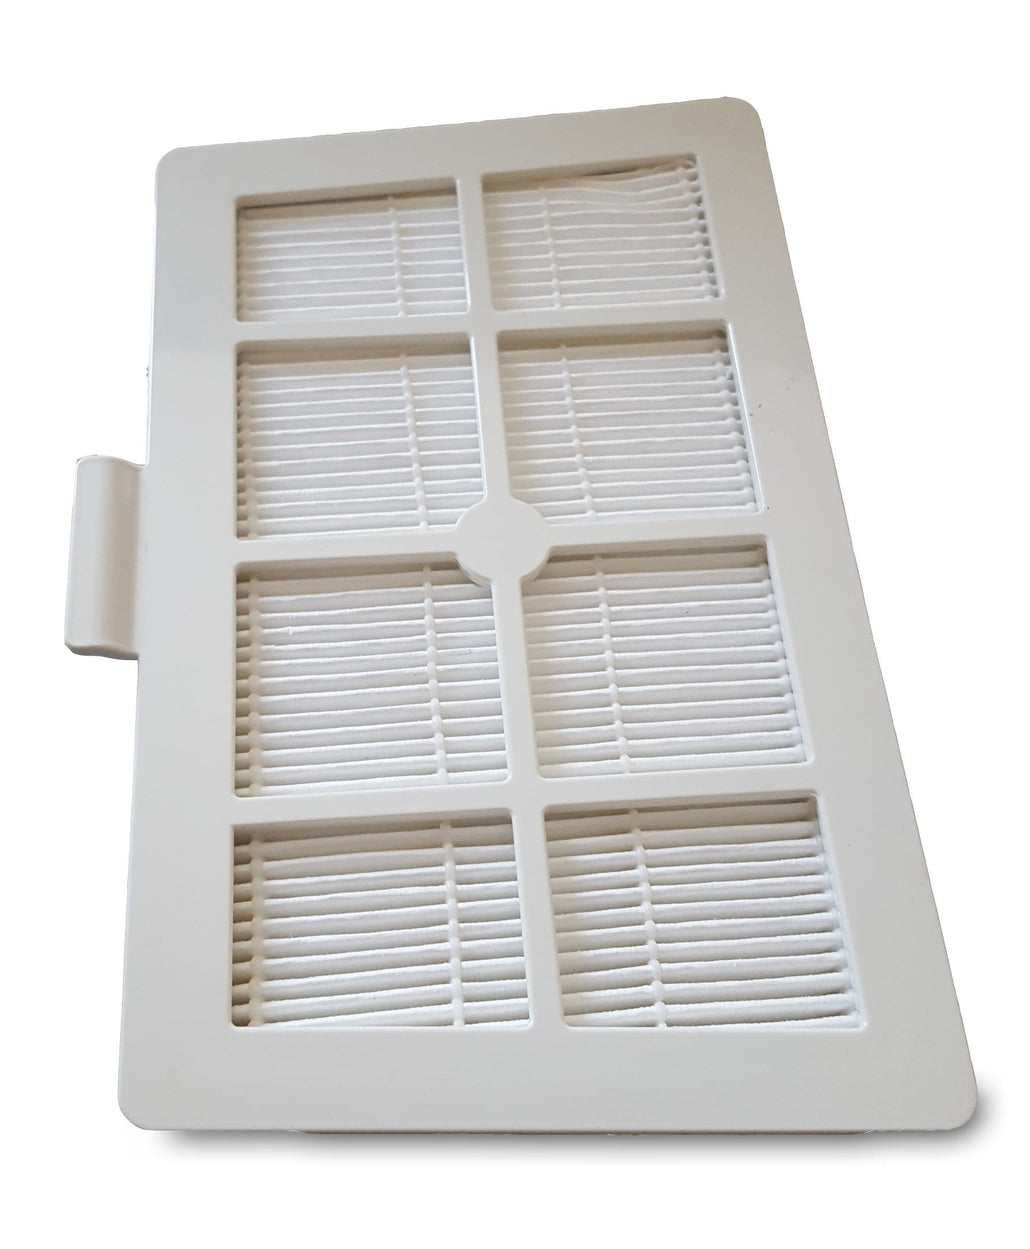 HEPA filter for Prolux Terravac Vacuum